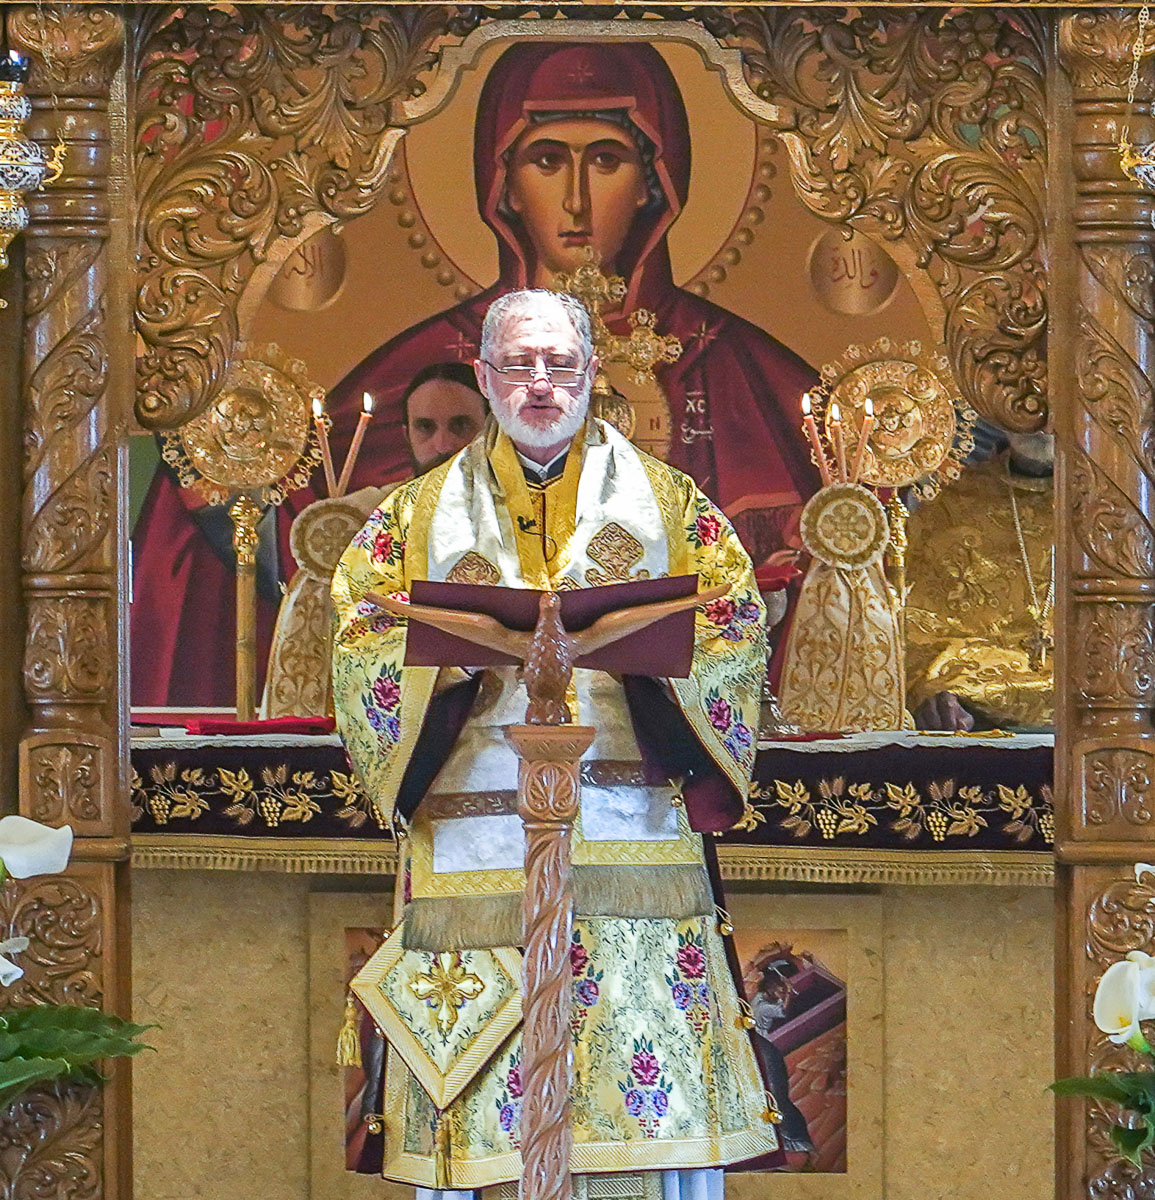 Homily of Archbishop Elpidophoros, St. George Orthodox Cathedral in Daly City, California